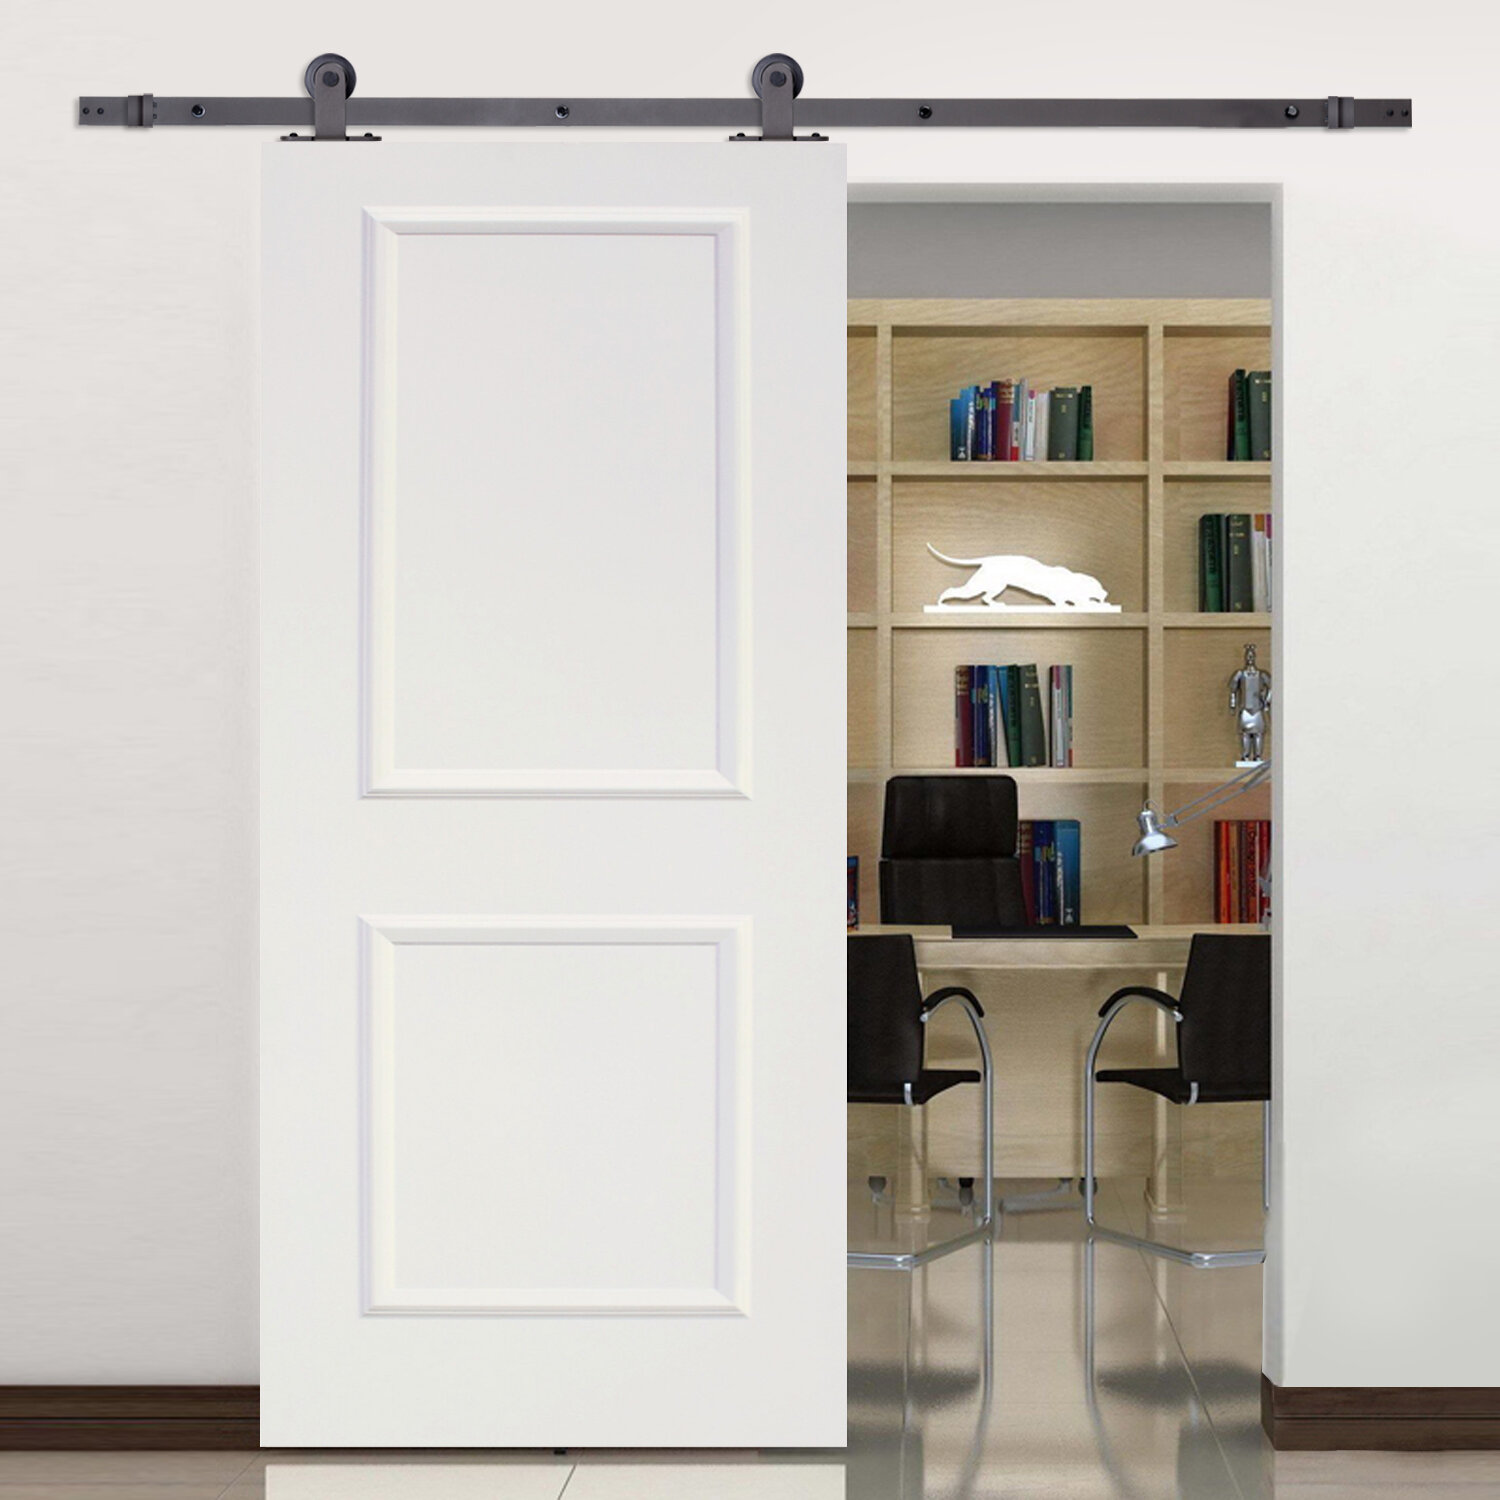 of charter install great prehung to interior how ideas image door home